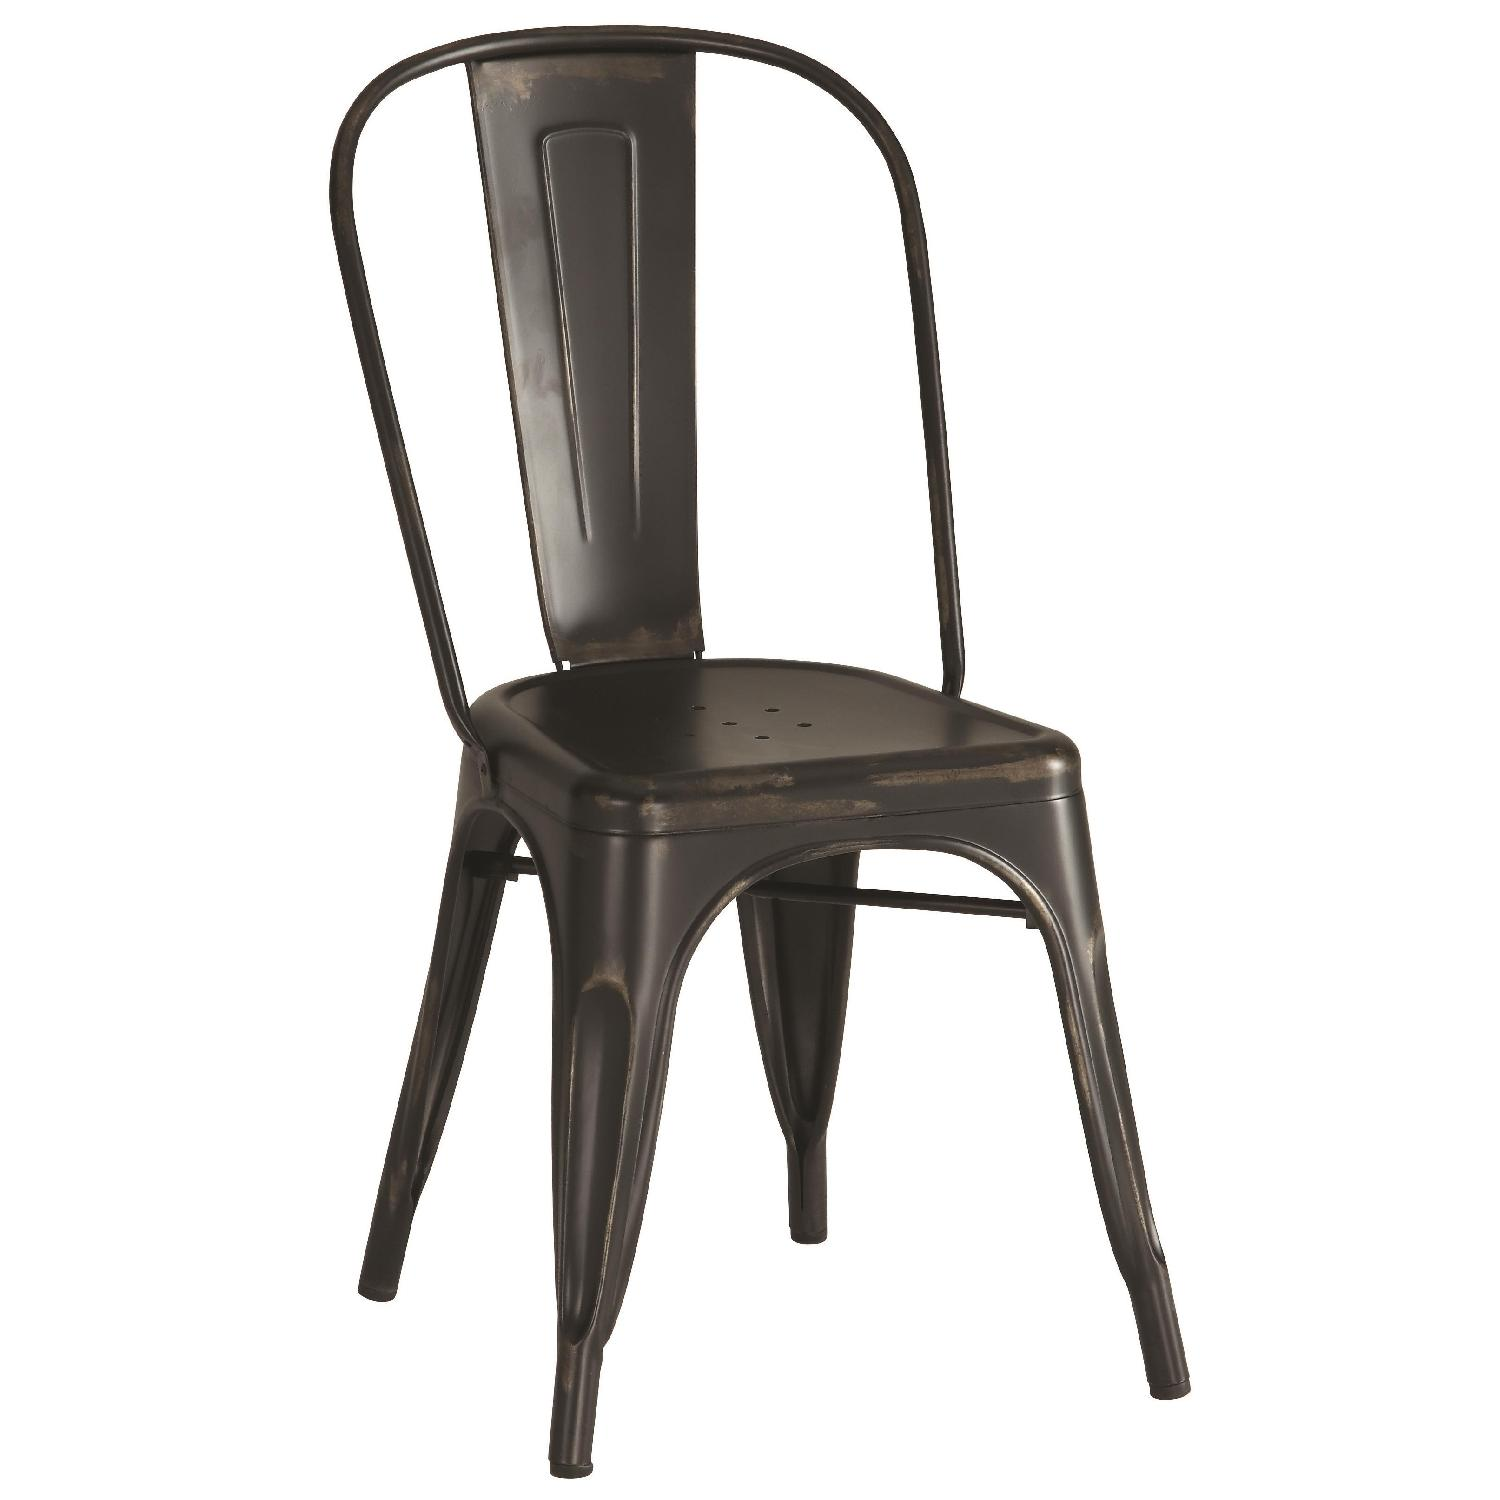 Rustic Galvanized Metal Dining Chairs in Antique Black Finish